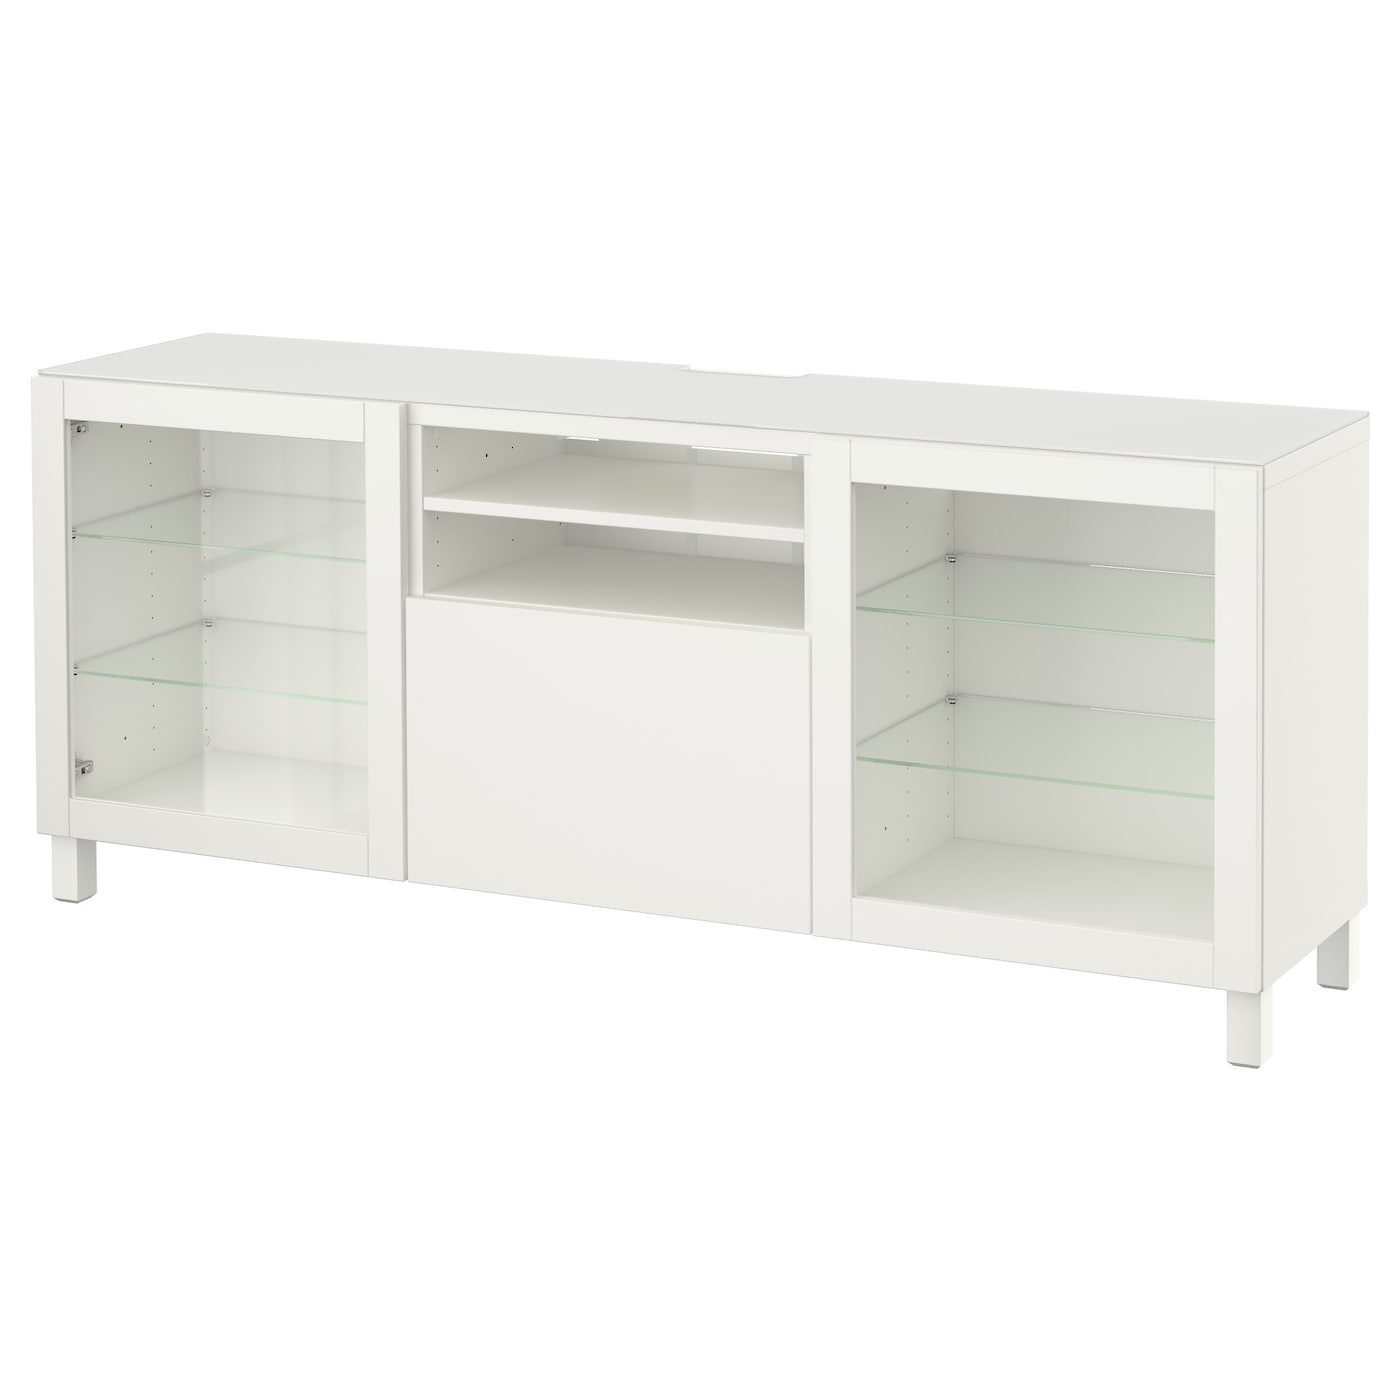 Best Banc Tv Lappviken Sindvik Blanc Verre Transparent 180x40x74  # Meuble Tv En Verre Transparent